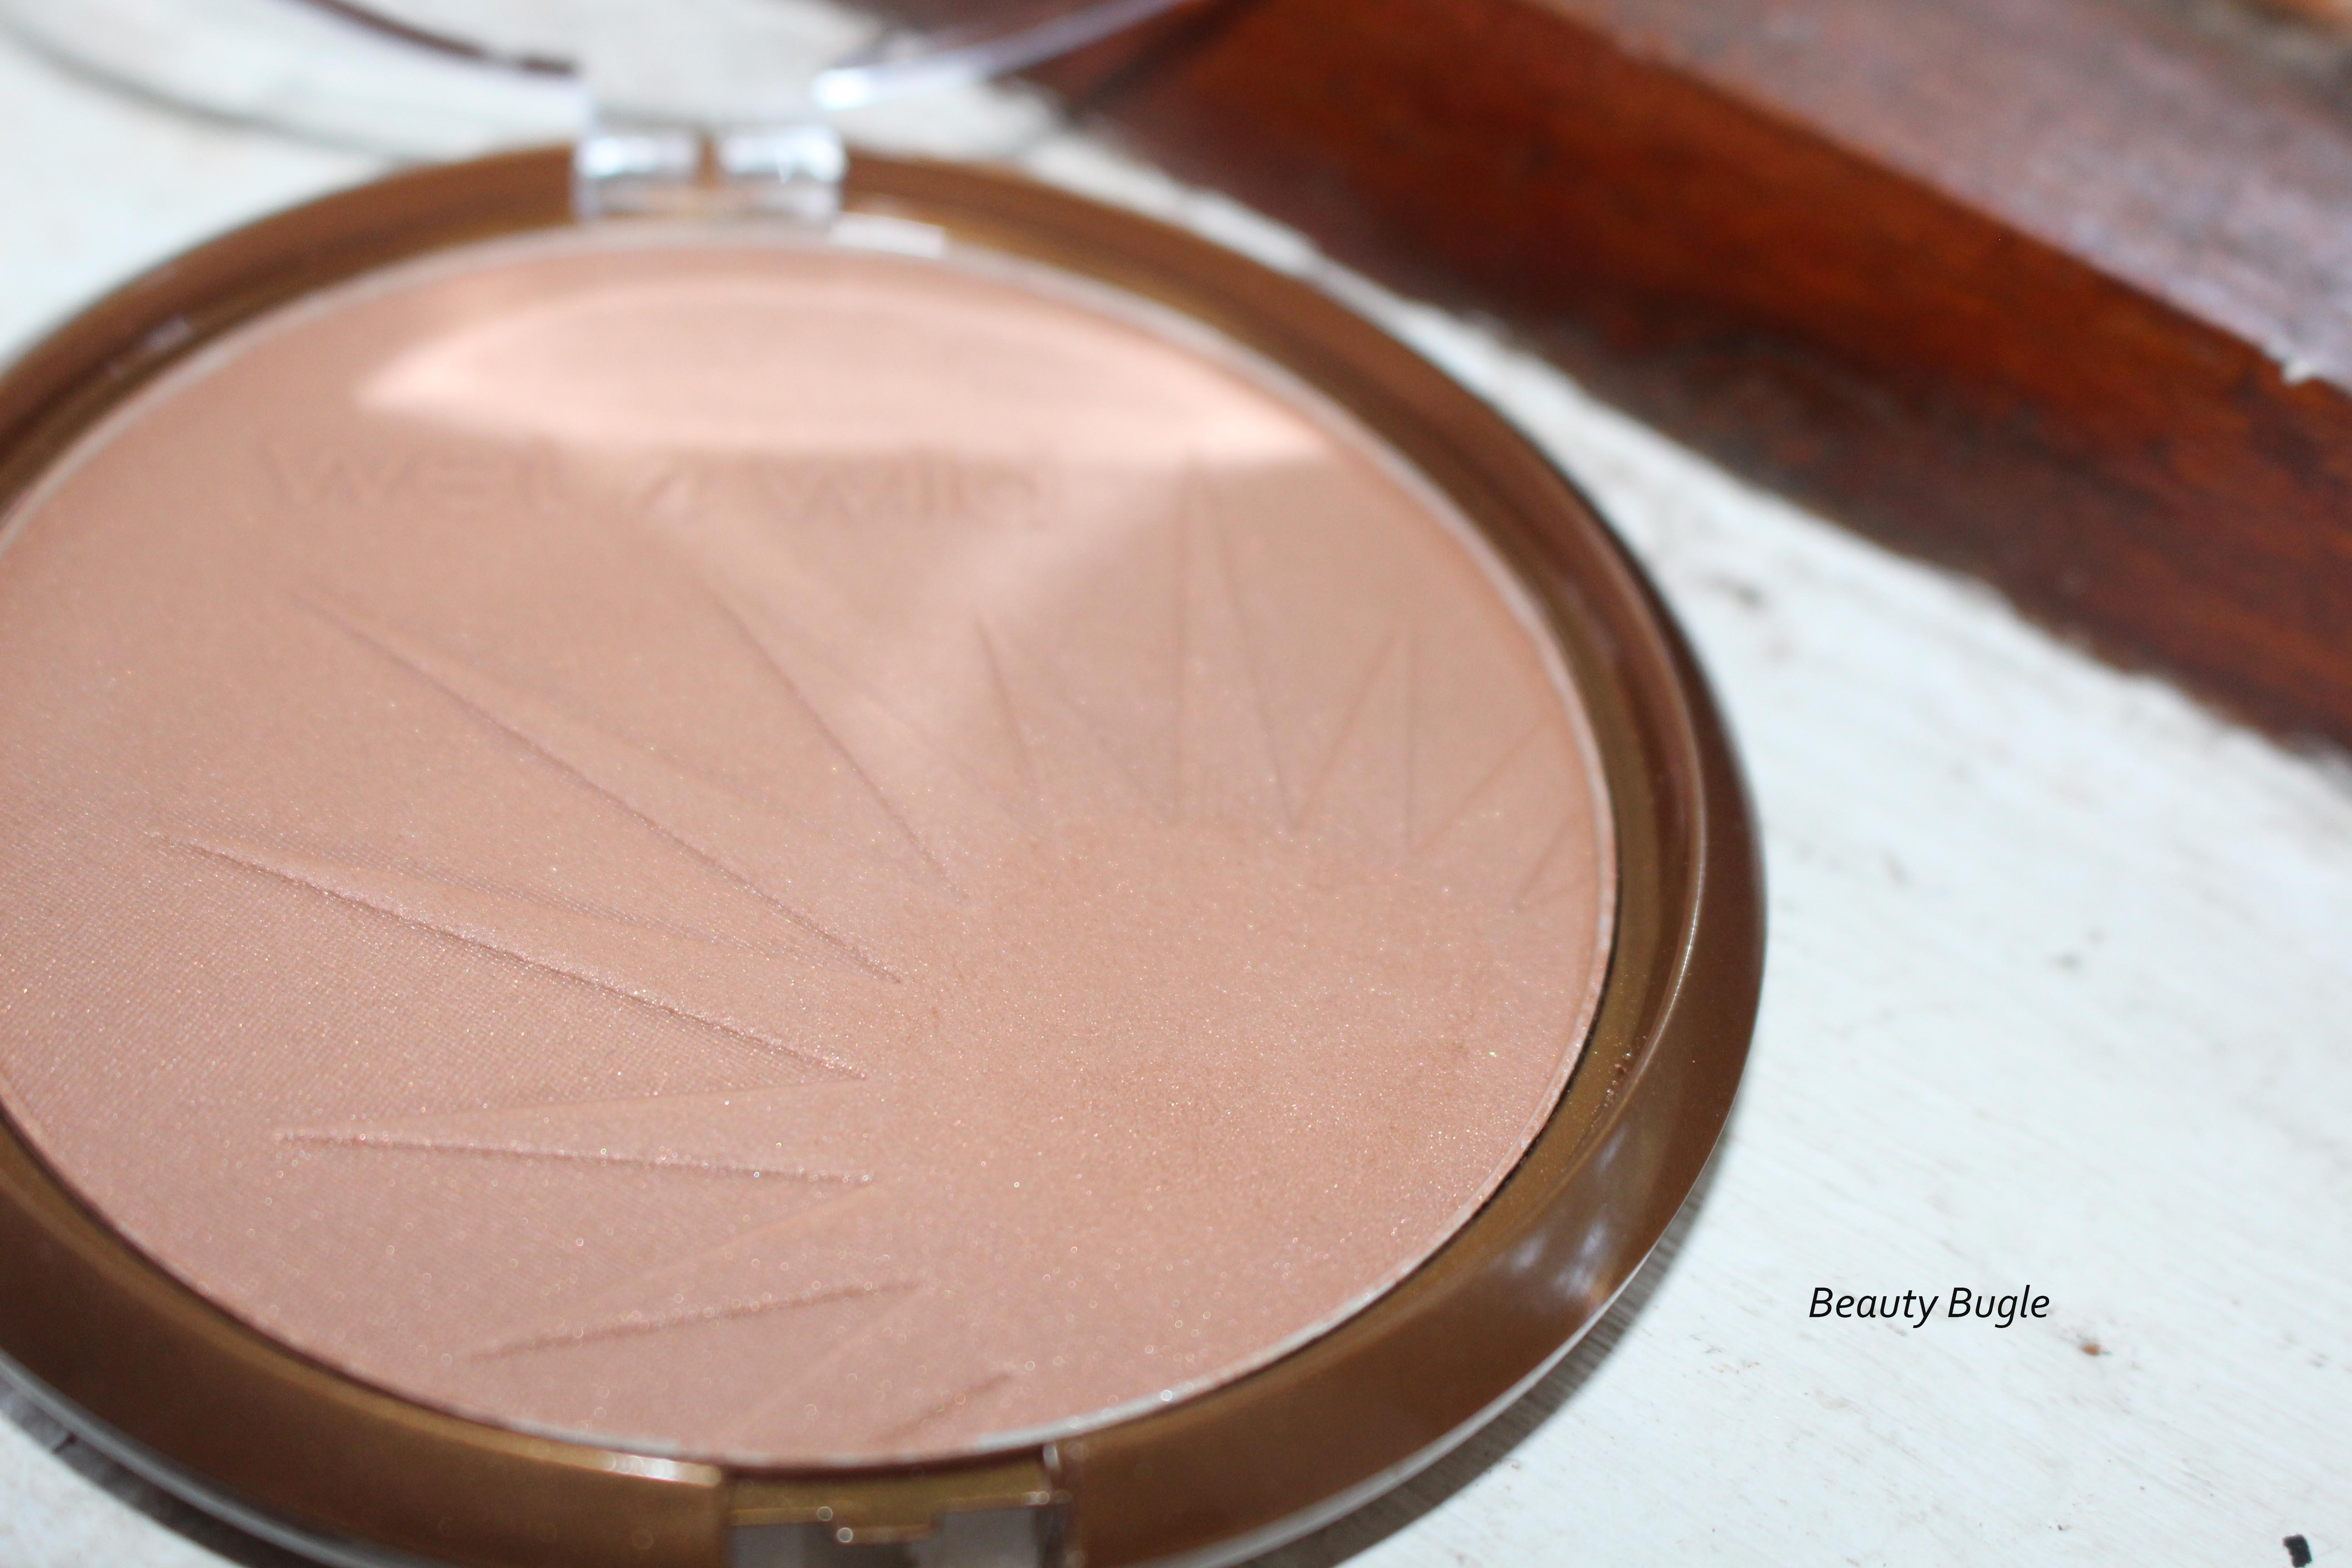 Wet n Wild Coloricon Bronzer has a beautiful sun pattern. And it's a mother load of product!